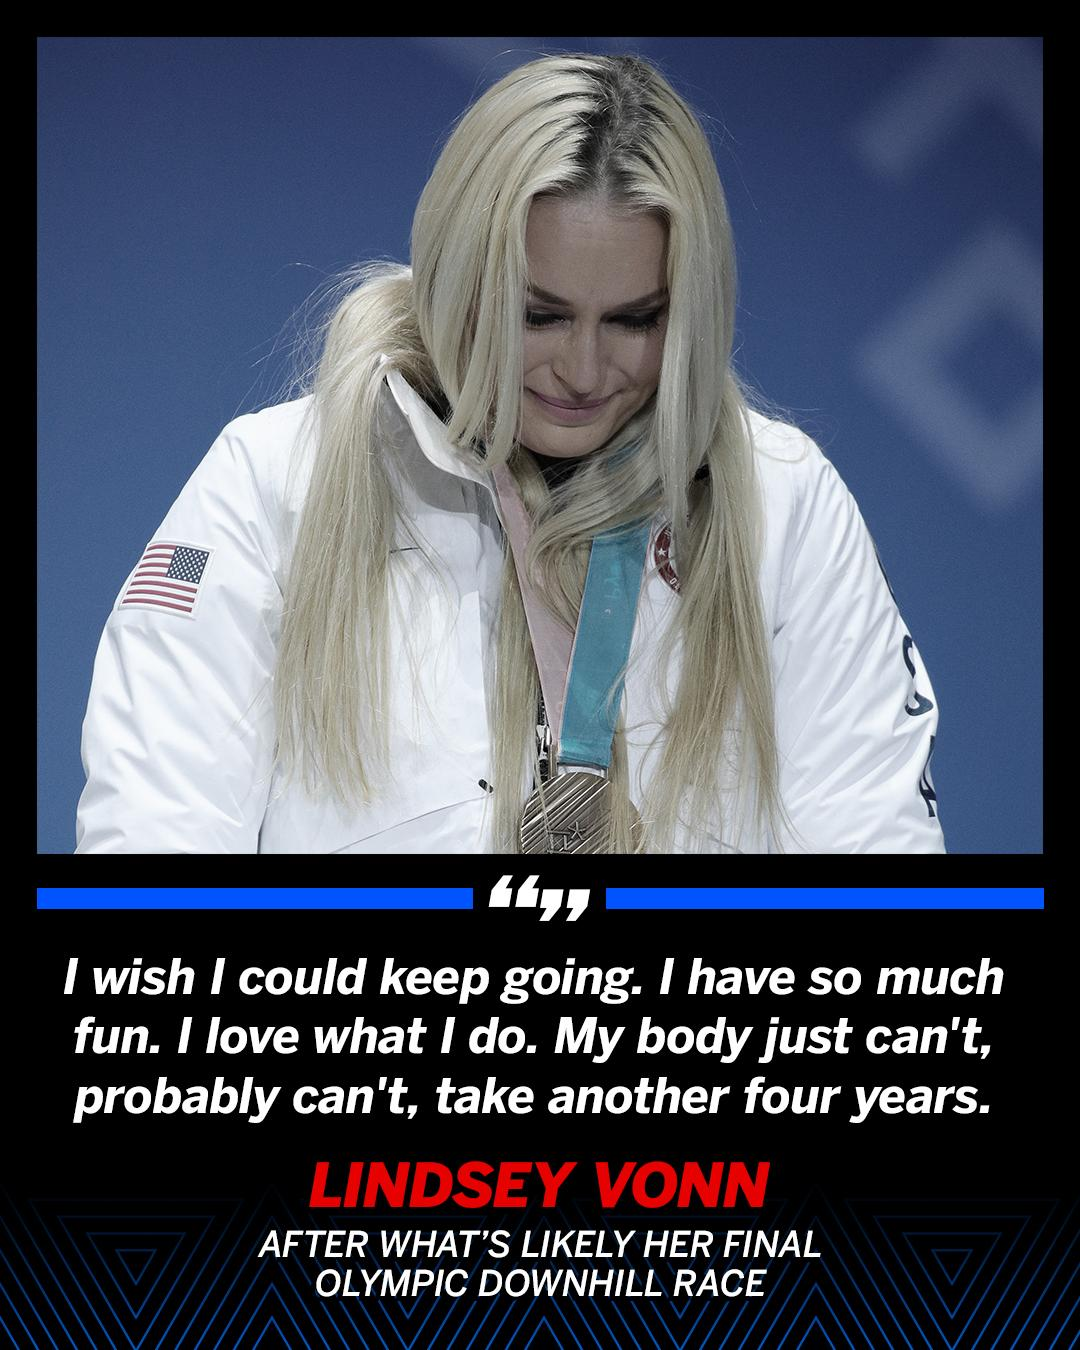 Lindsey Vonn, the oldest female alpine-skiing medalist in Olympics history, wishes she could go another 4 years. https://t.co/ZgqUpMJWmW